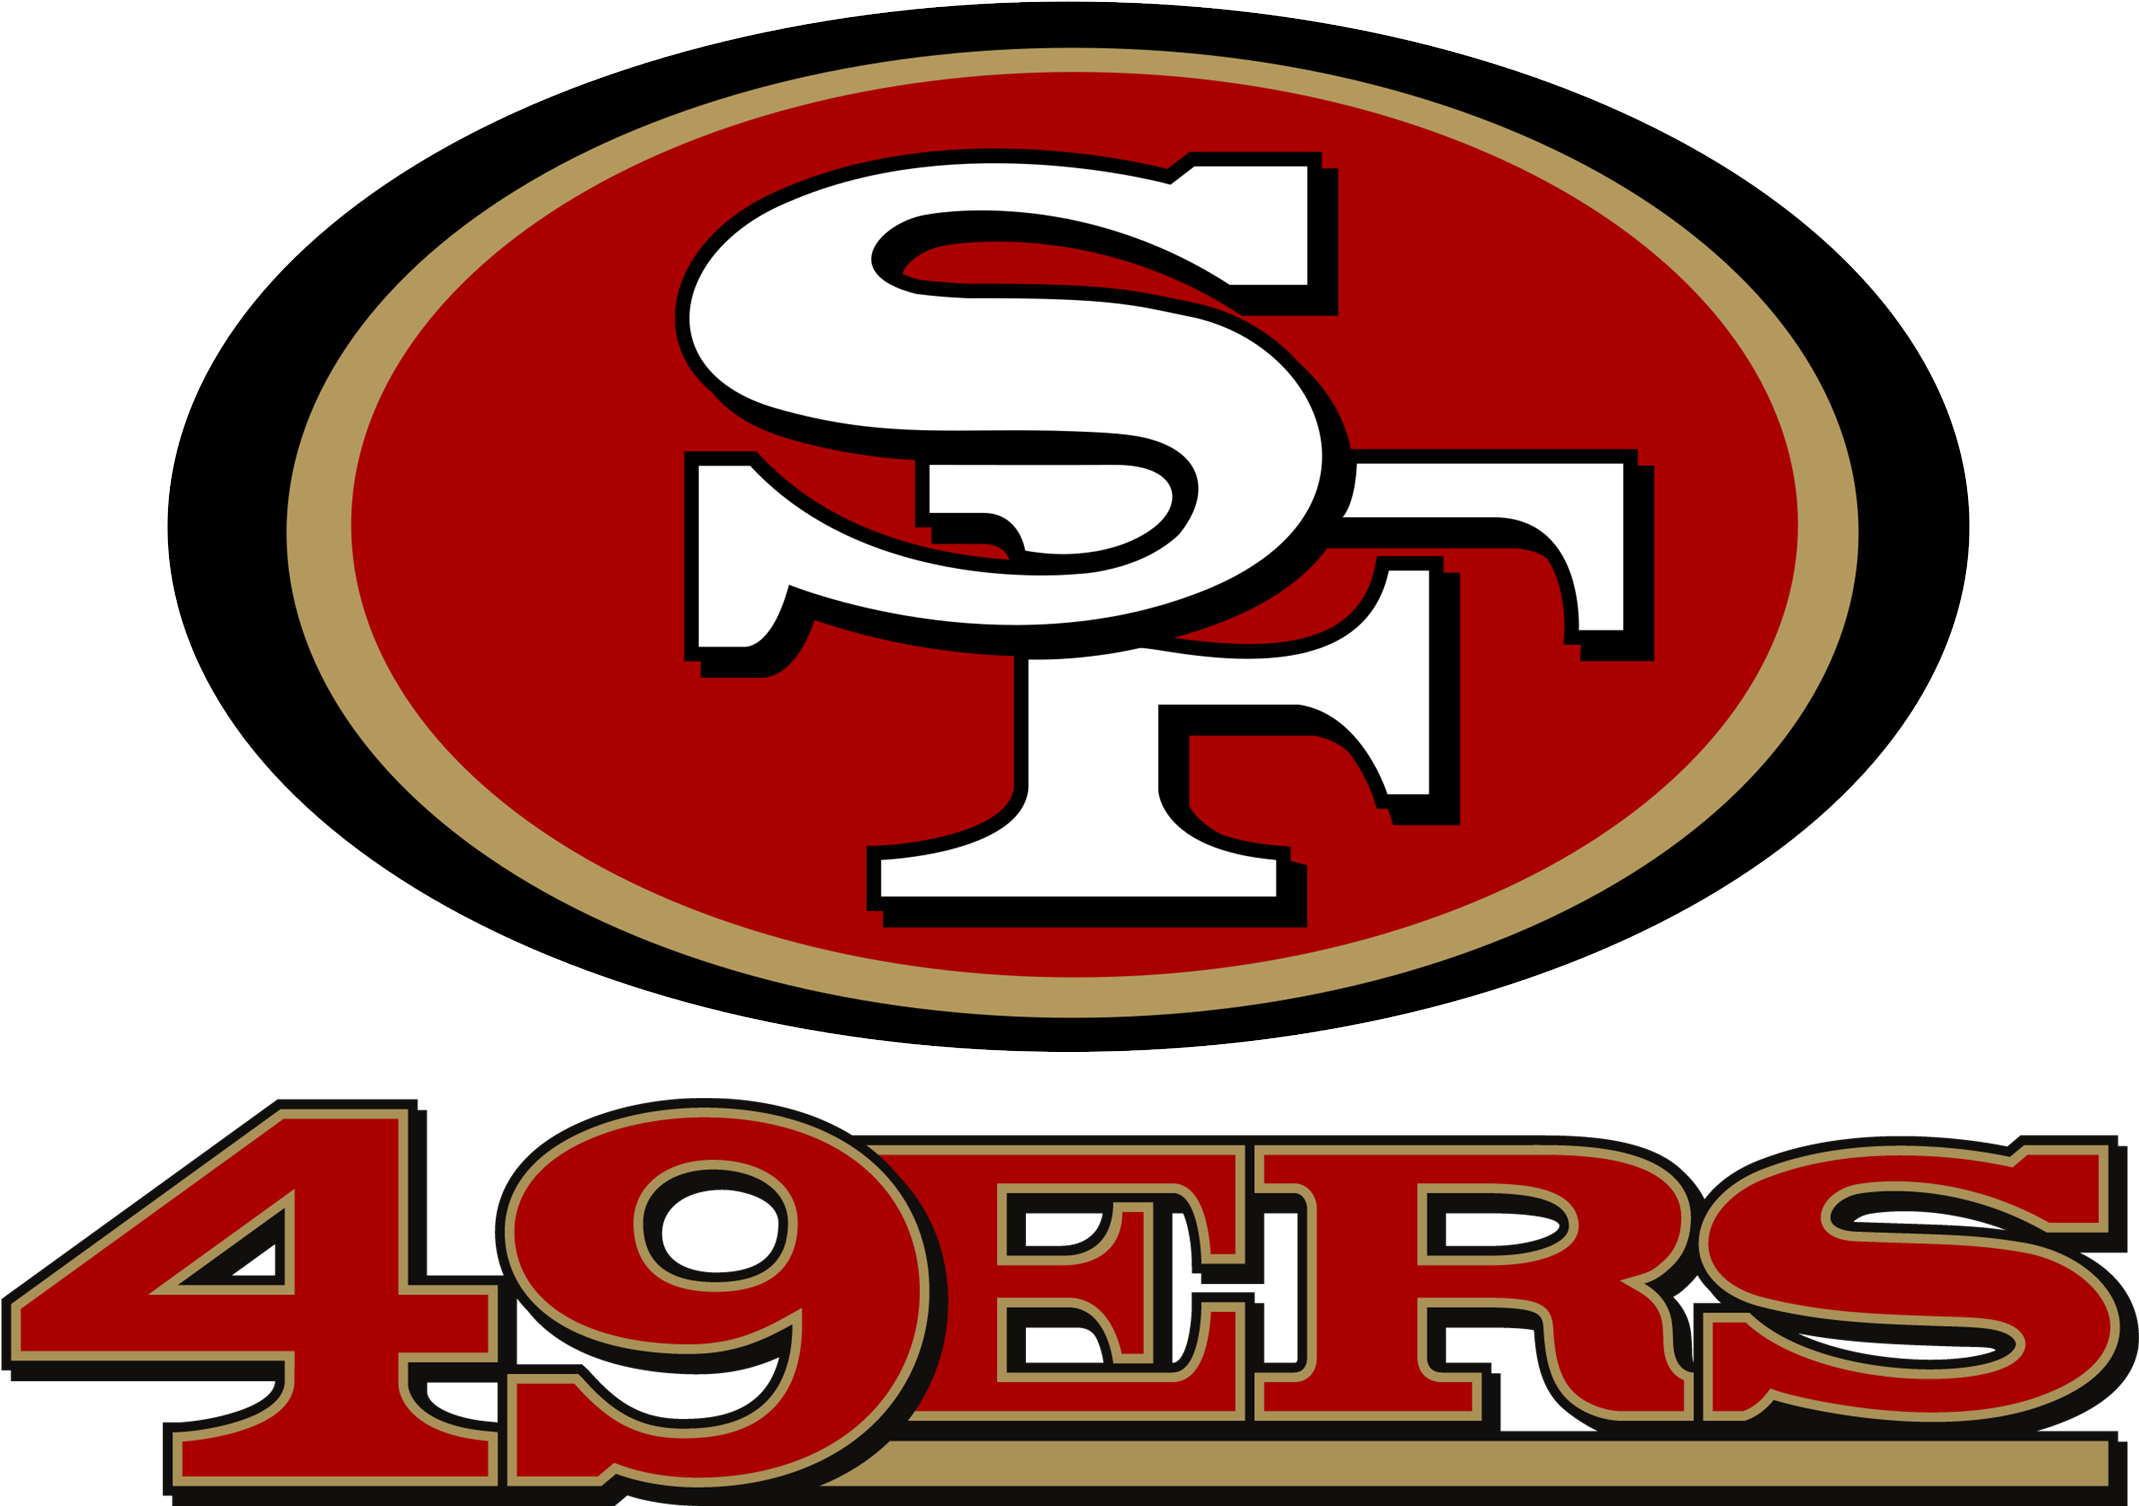 49ers football logo image by Maria Veronica Martinez on SF